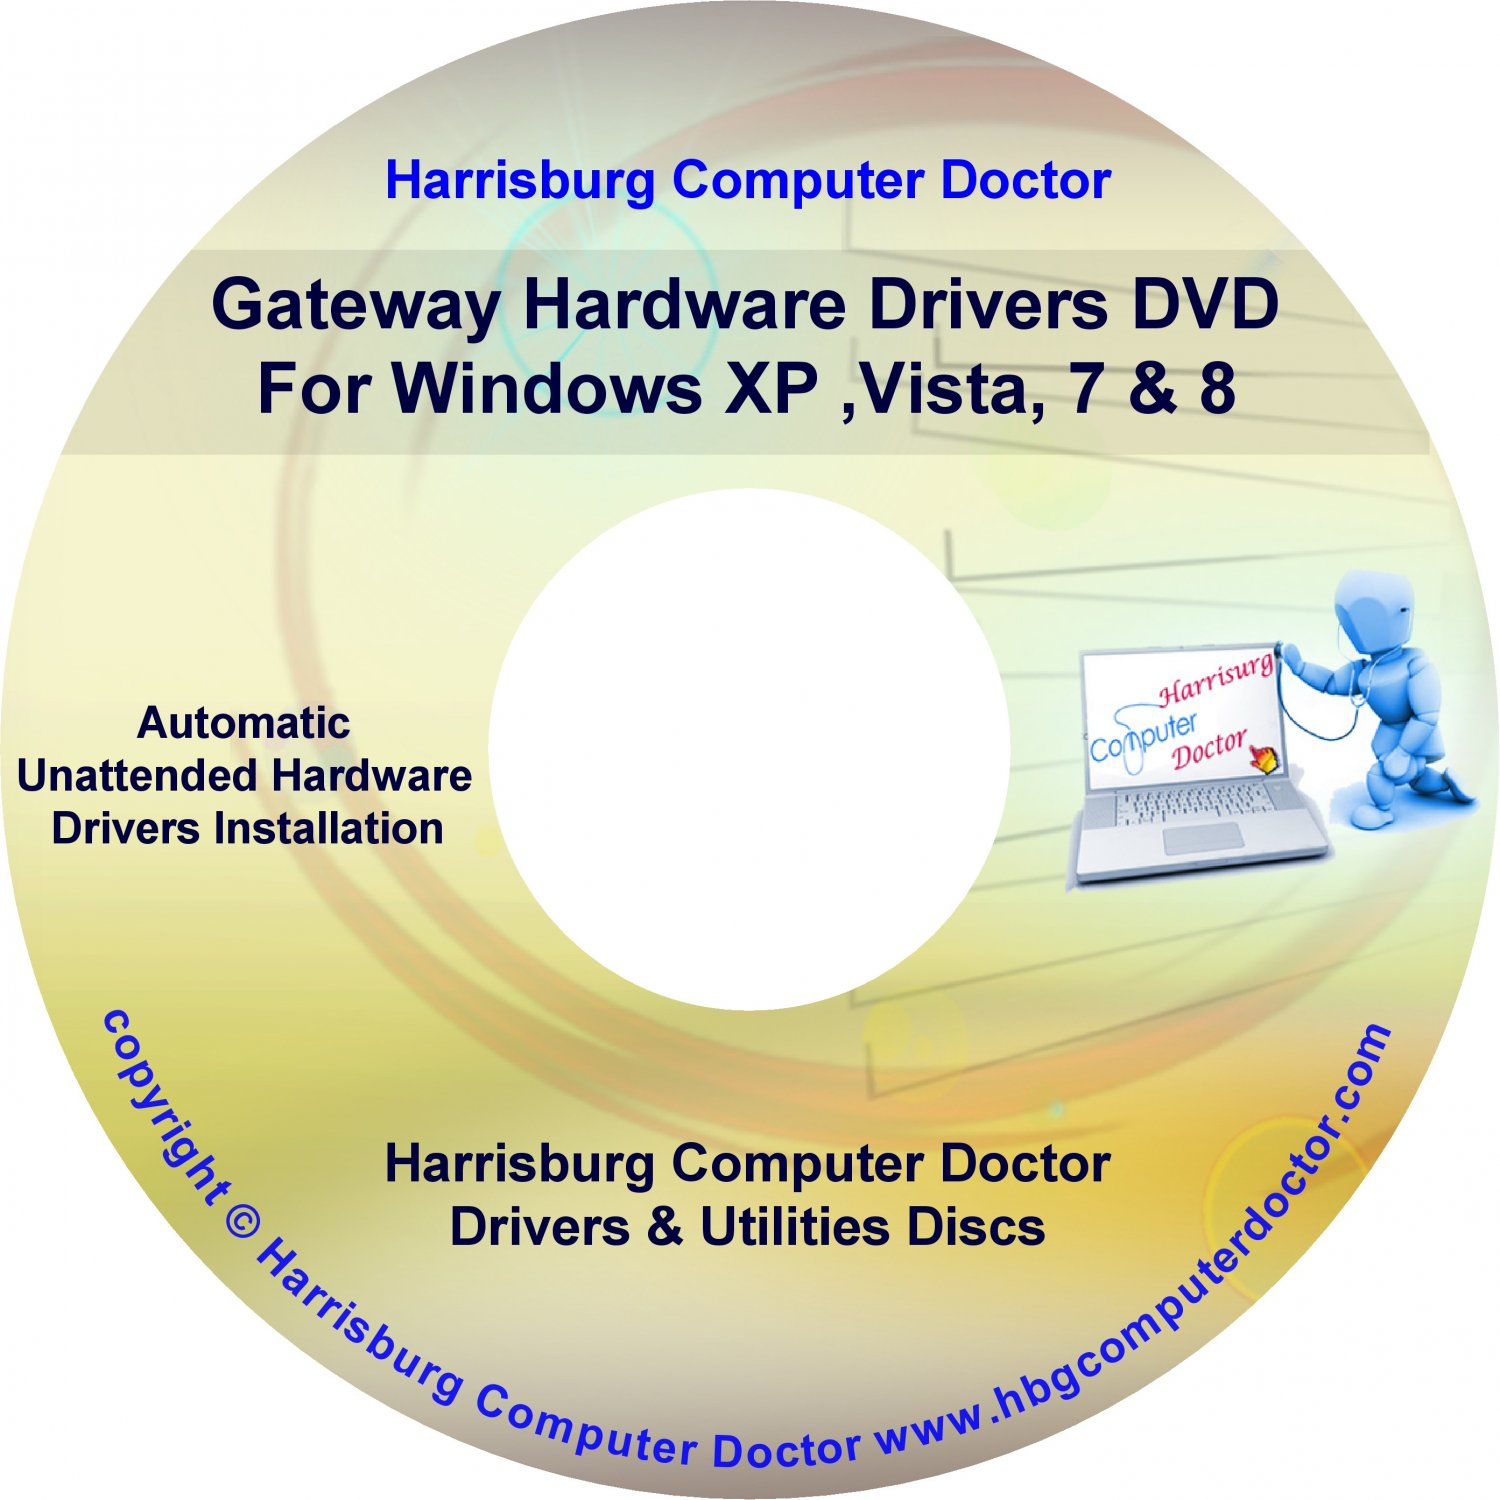 Gateway P-6318 Drivers DVD For Windows, XP, Vista, 7 & 8